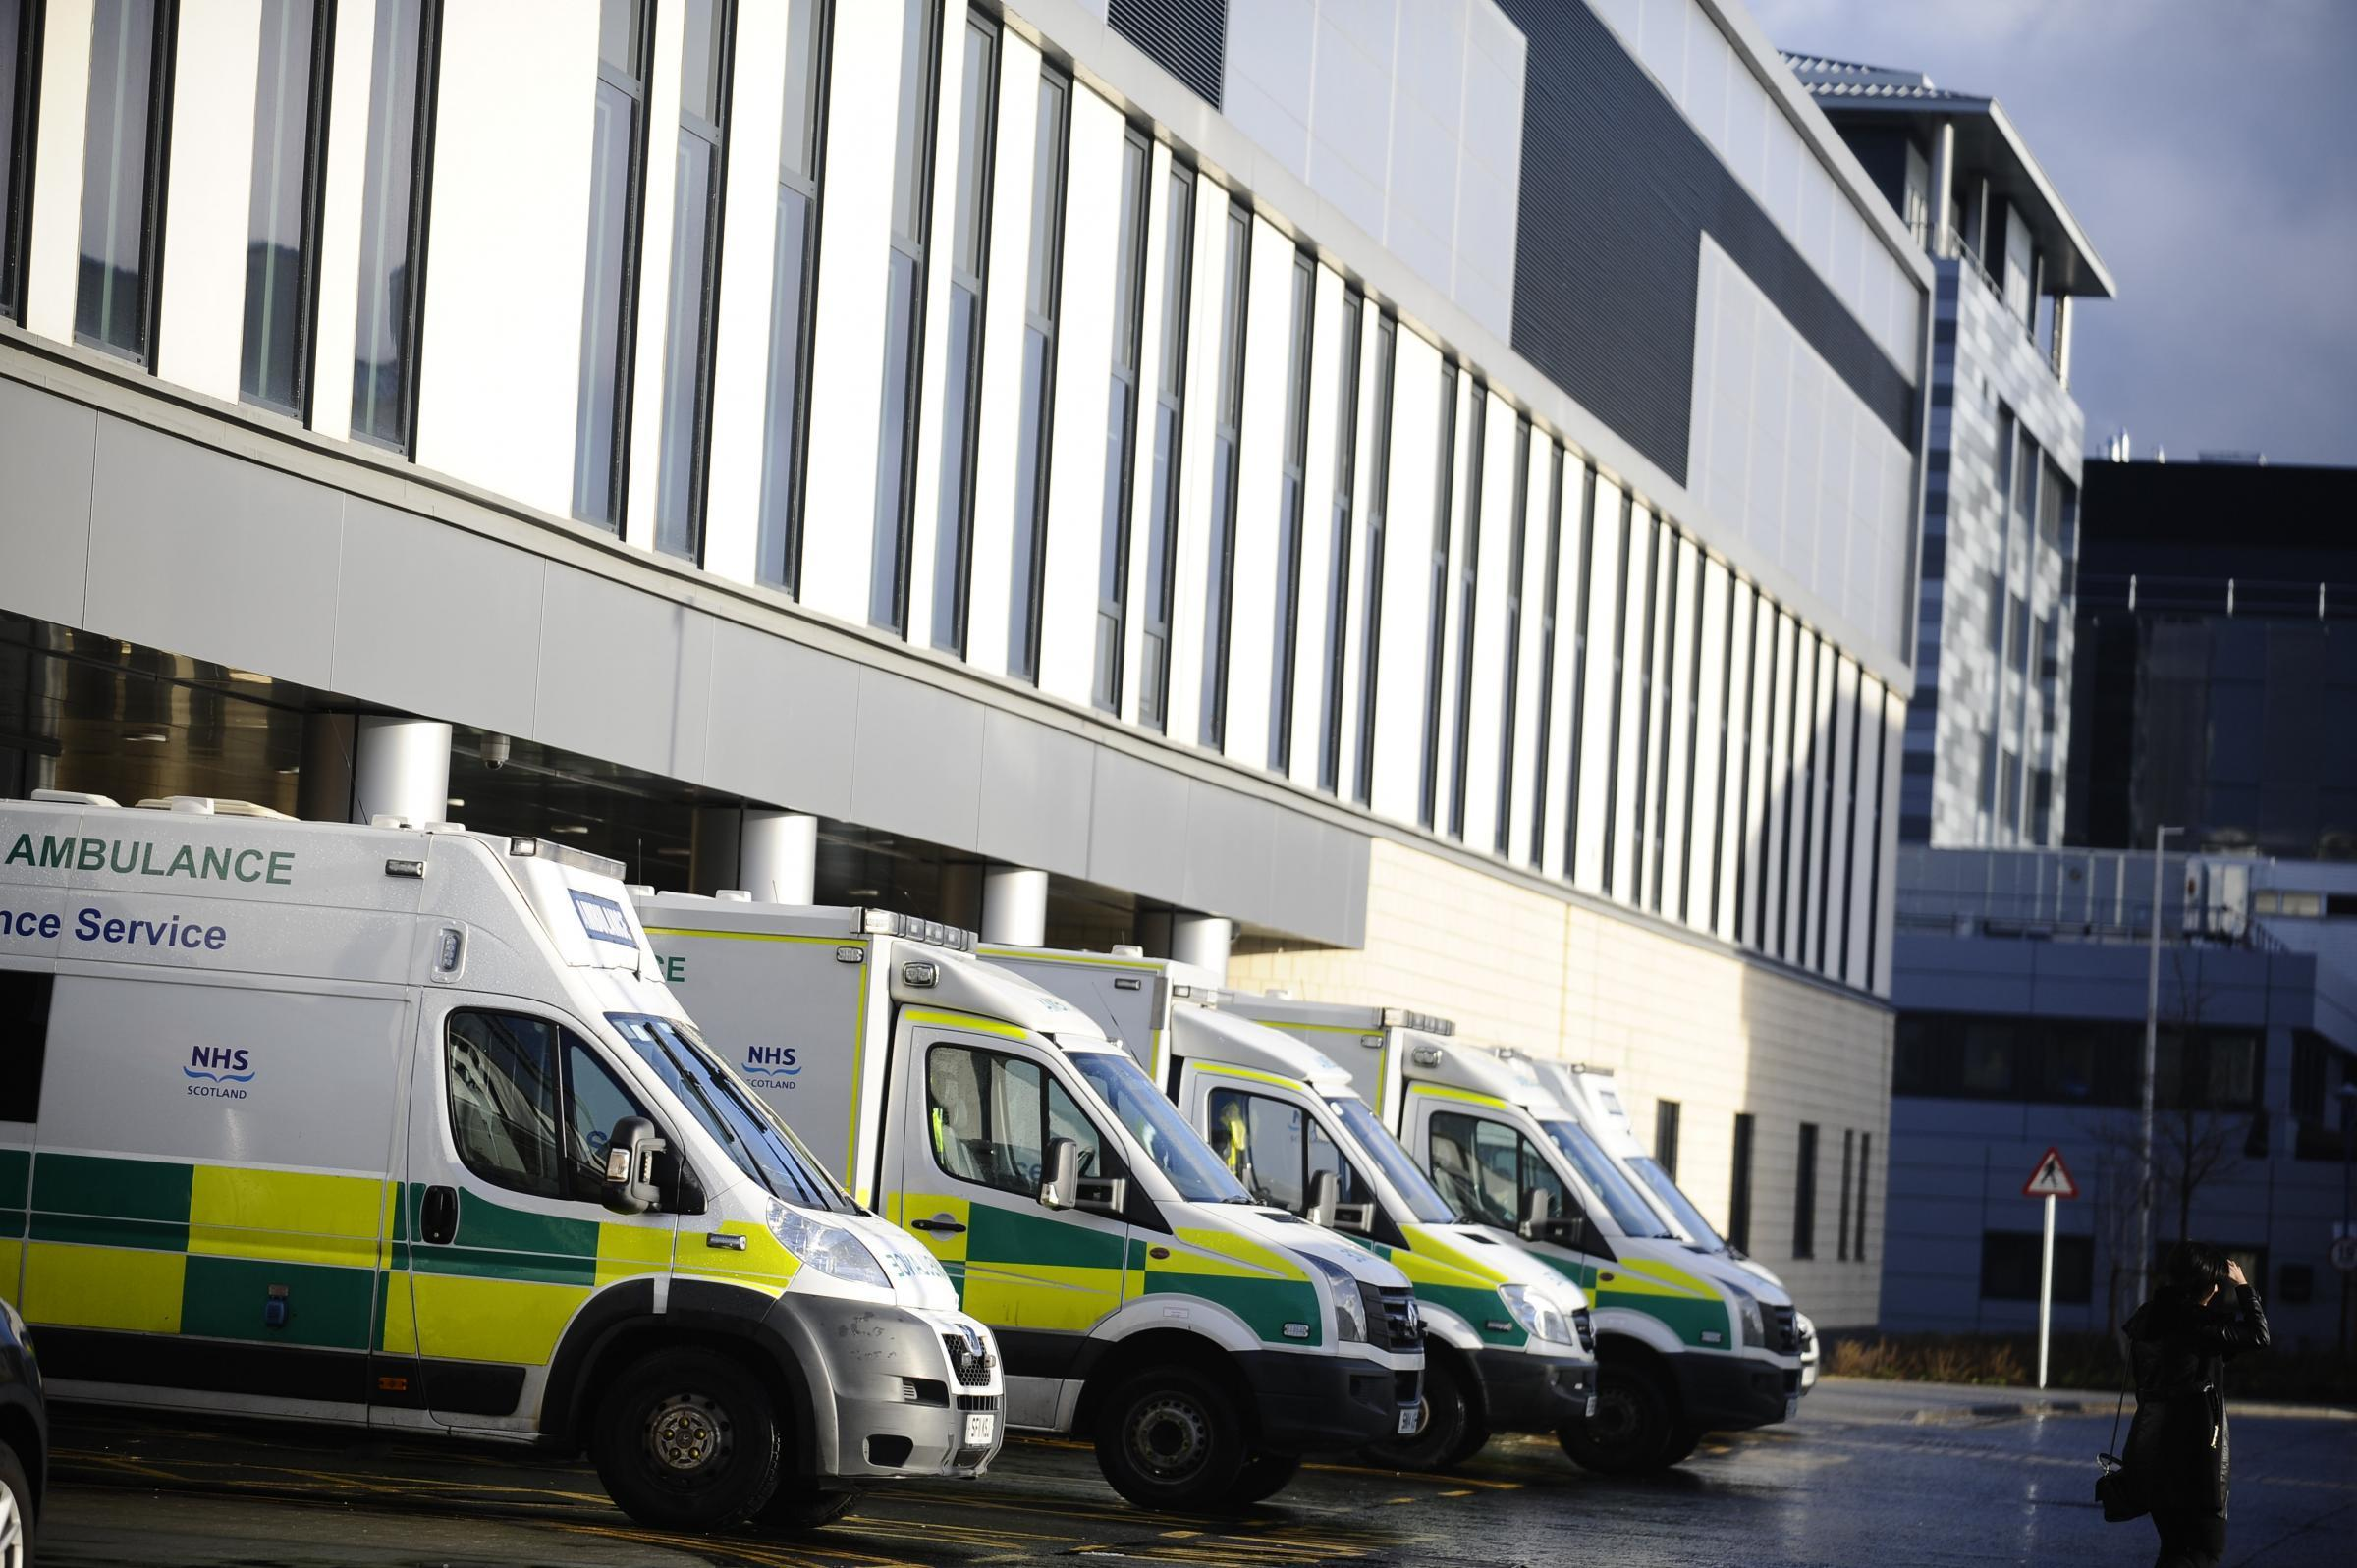 Covid: NHS Scotland faces a winter worse than pandemic, senior doctor warns